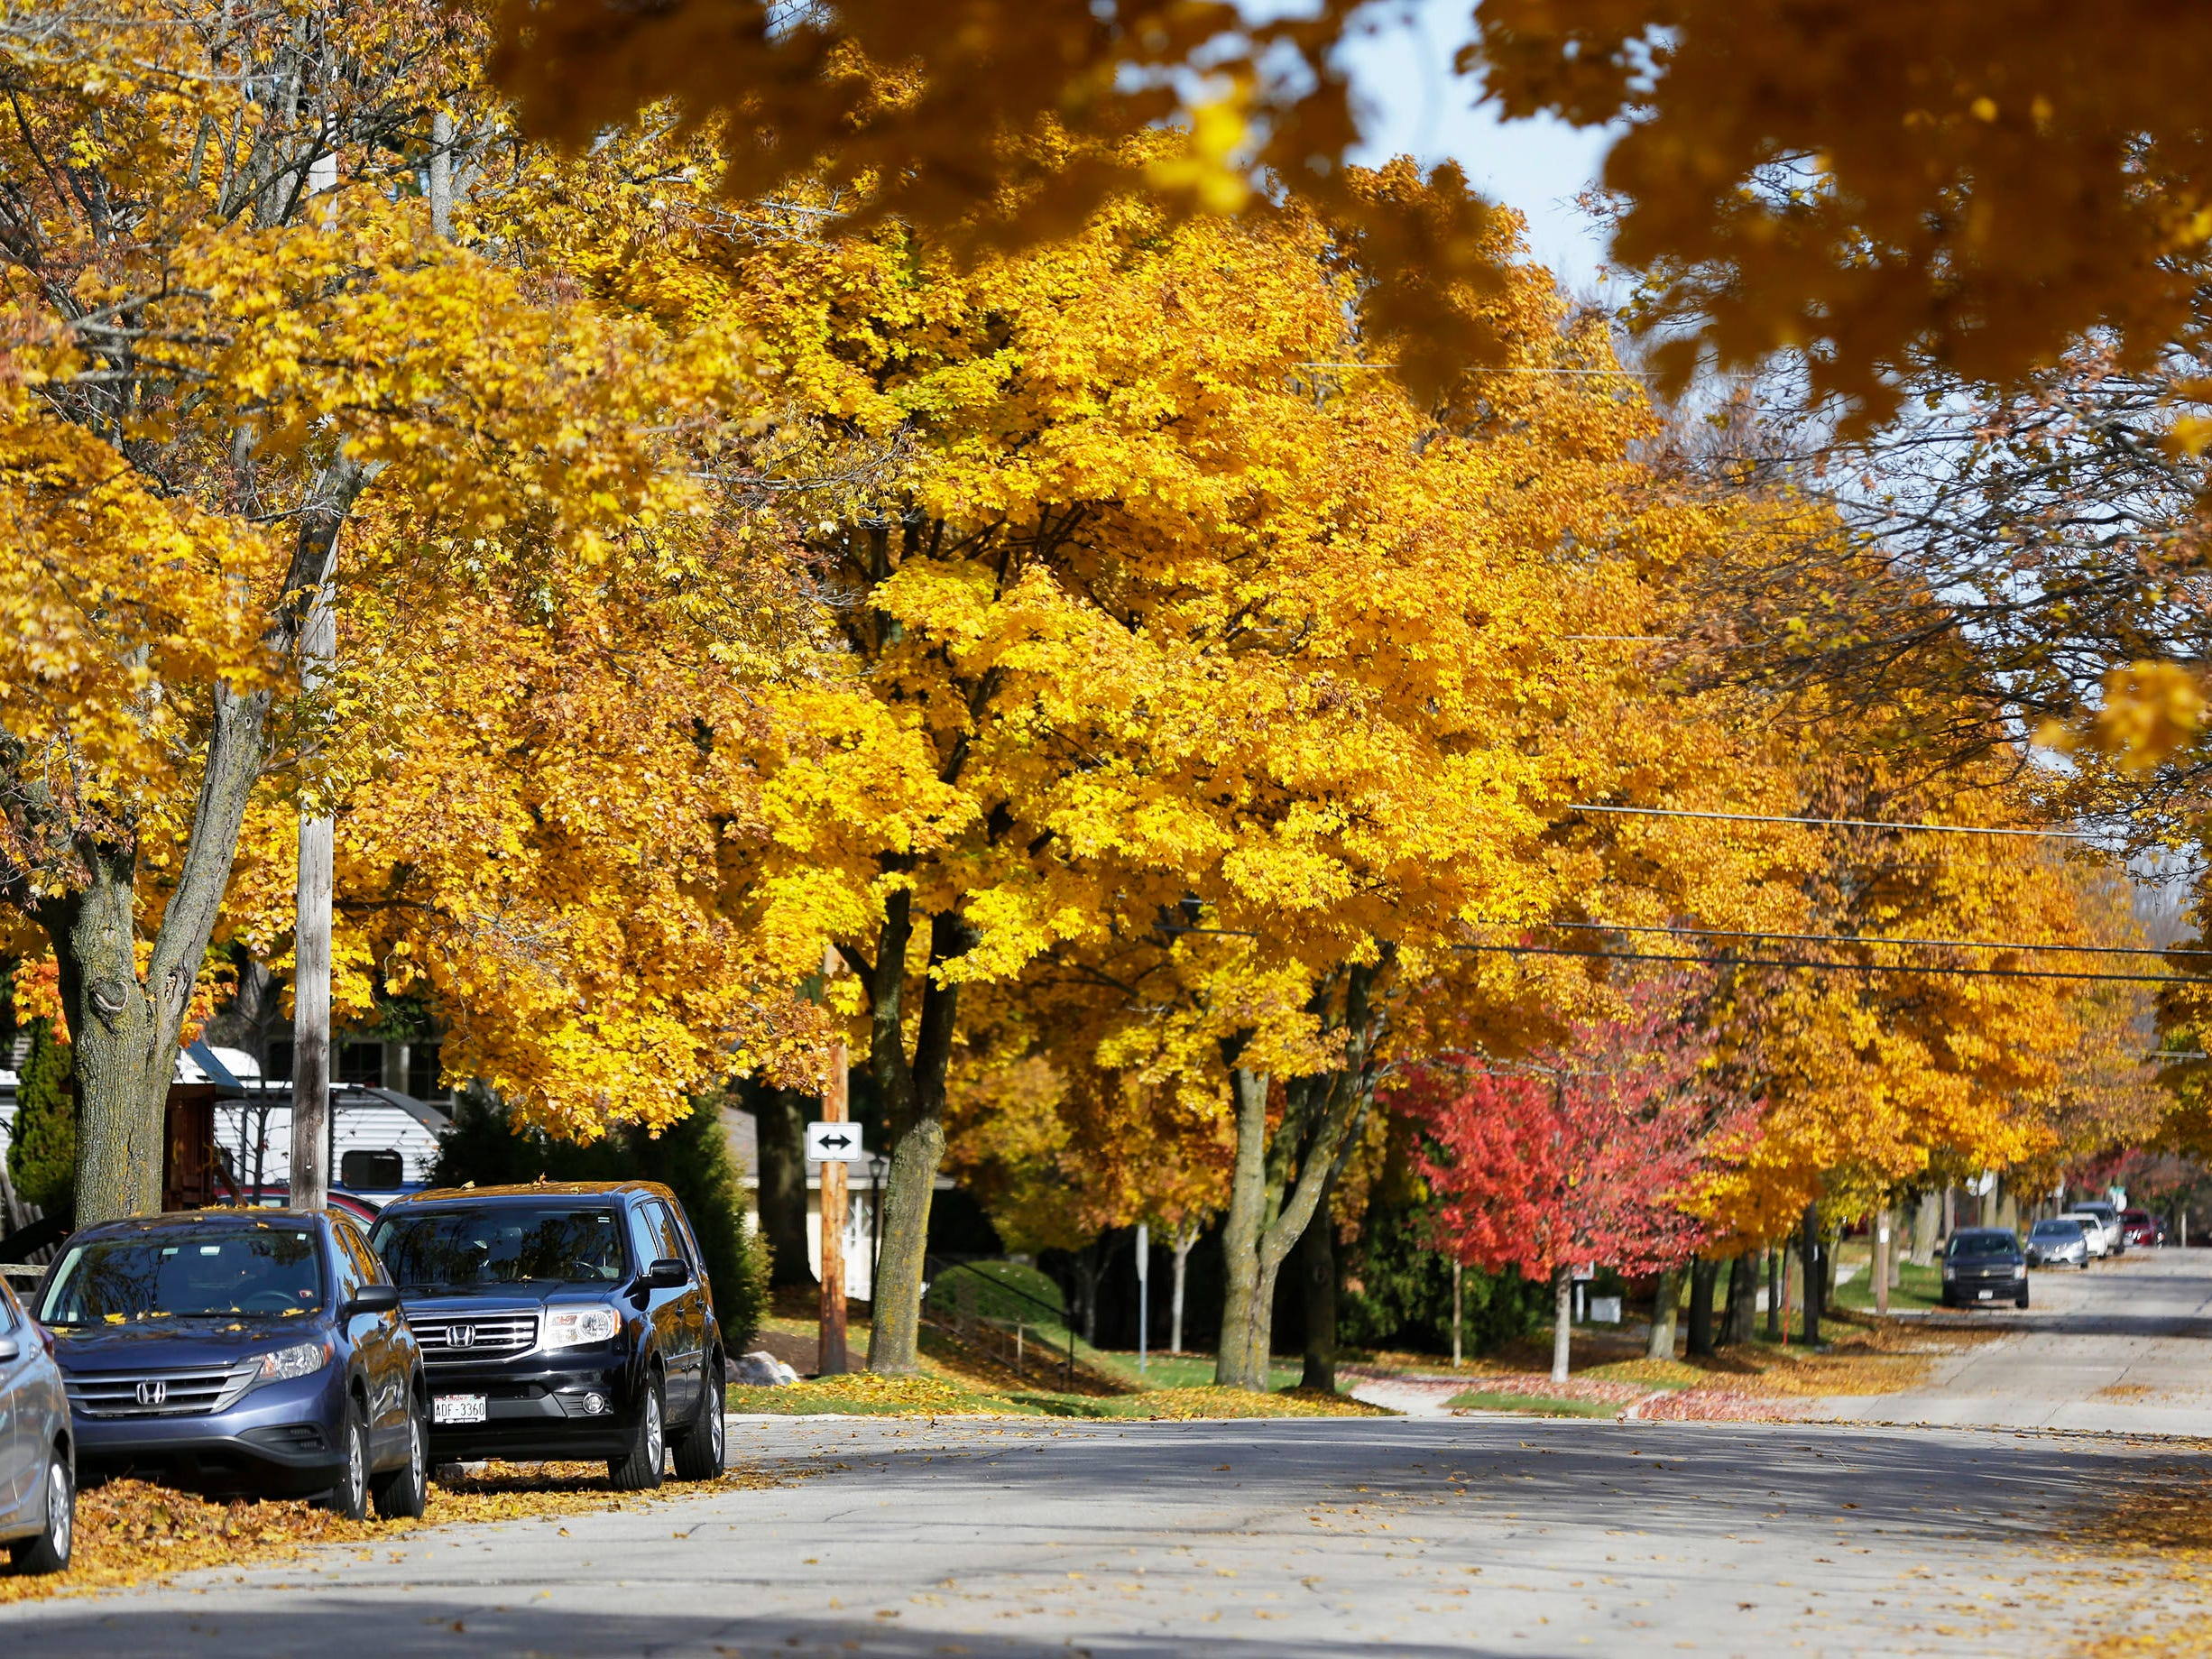 A view of fall color down North 4th Street, Wednesday, October 31, 2018, in Sheboygan, Wis.